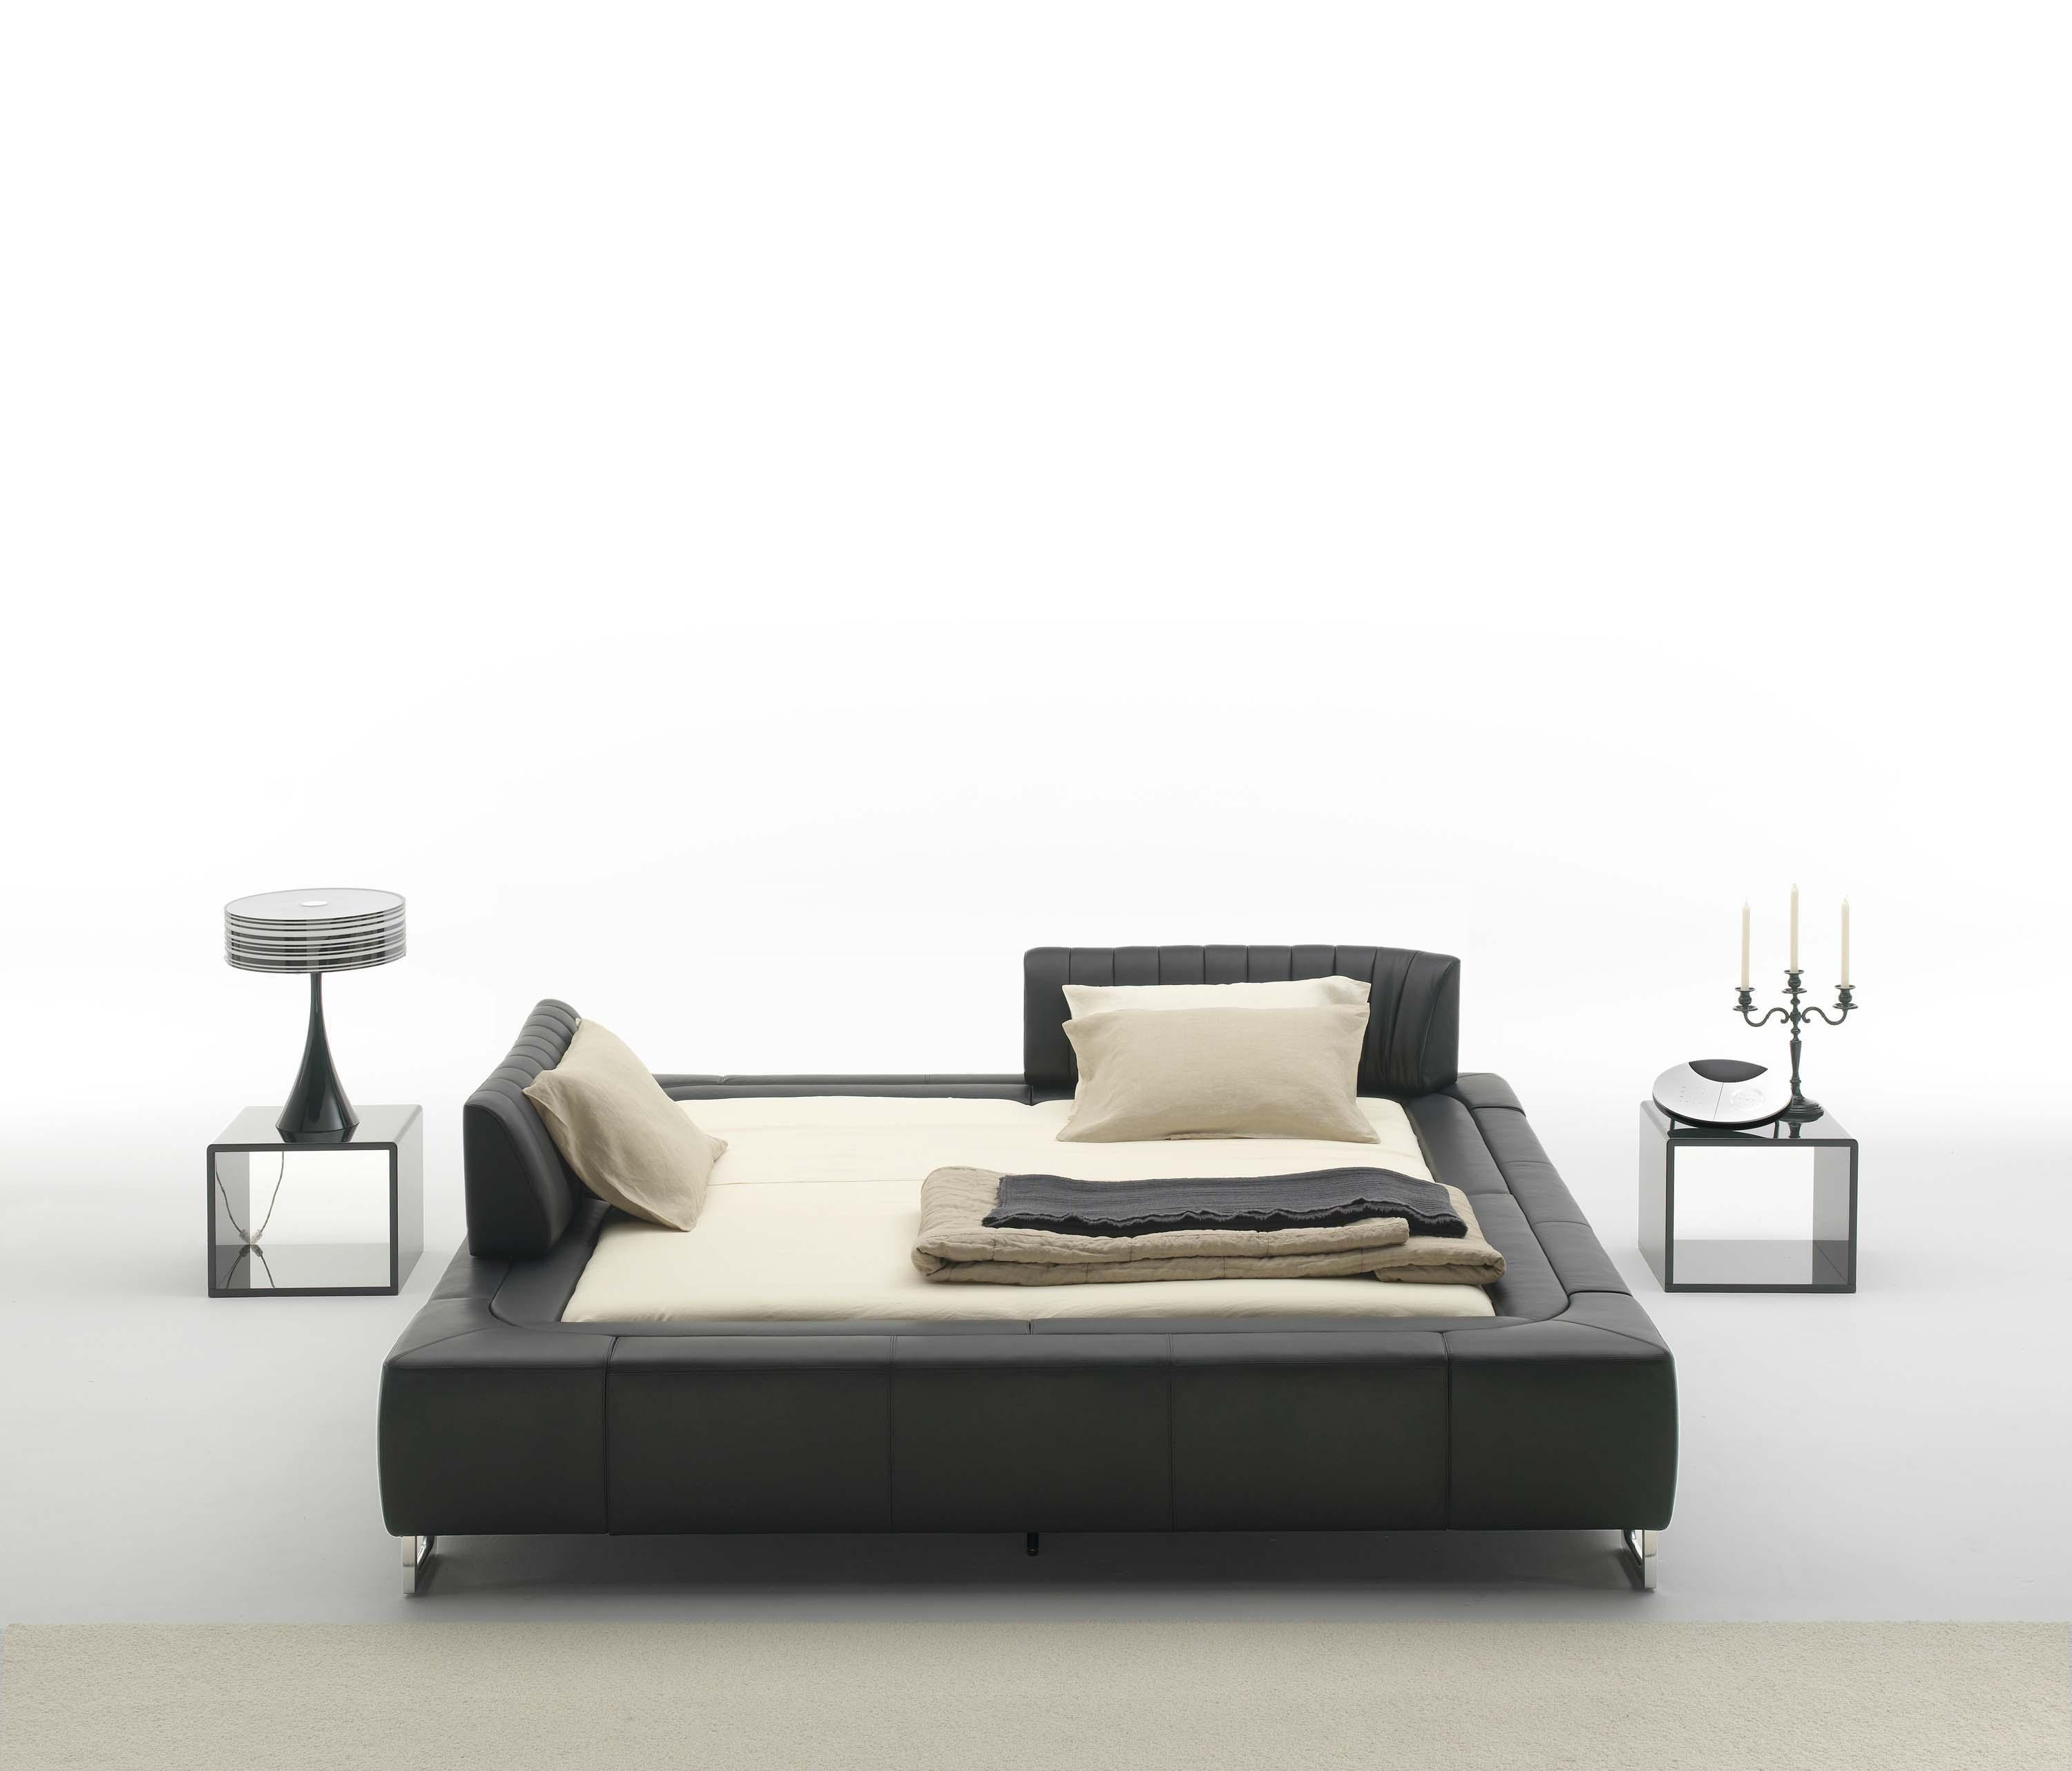 ds 1165 beds from de sede architonic. Black Bedroom Furniture Sets. Home Design Ideas